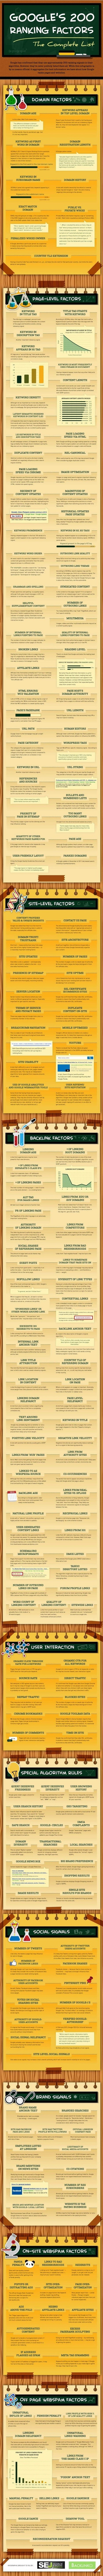 Google's 200 ranking factors: The complete list [infographic] | EEDSP | Scoop.it